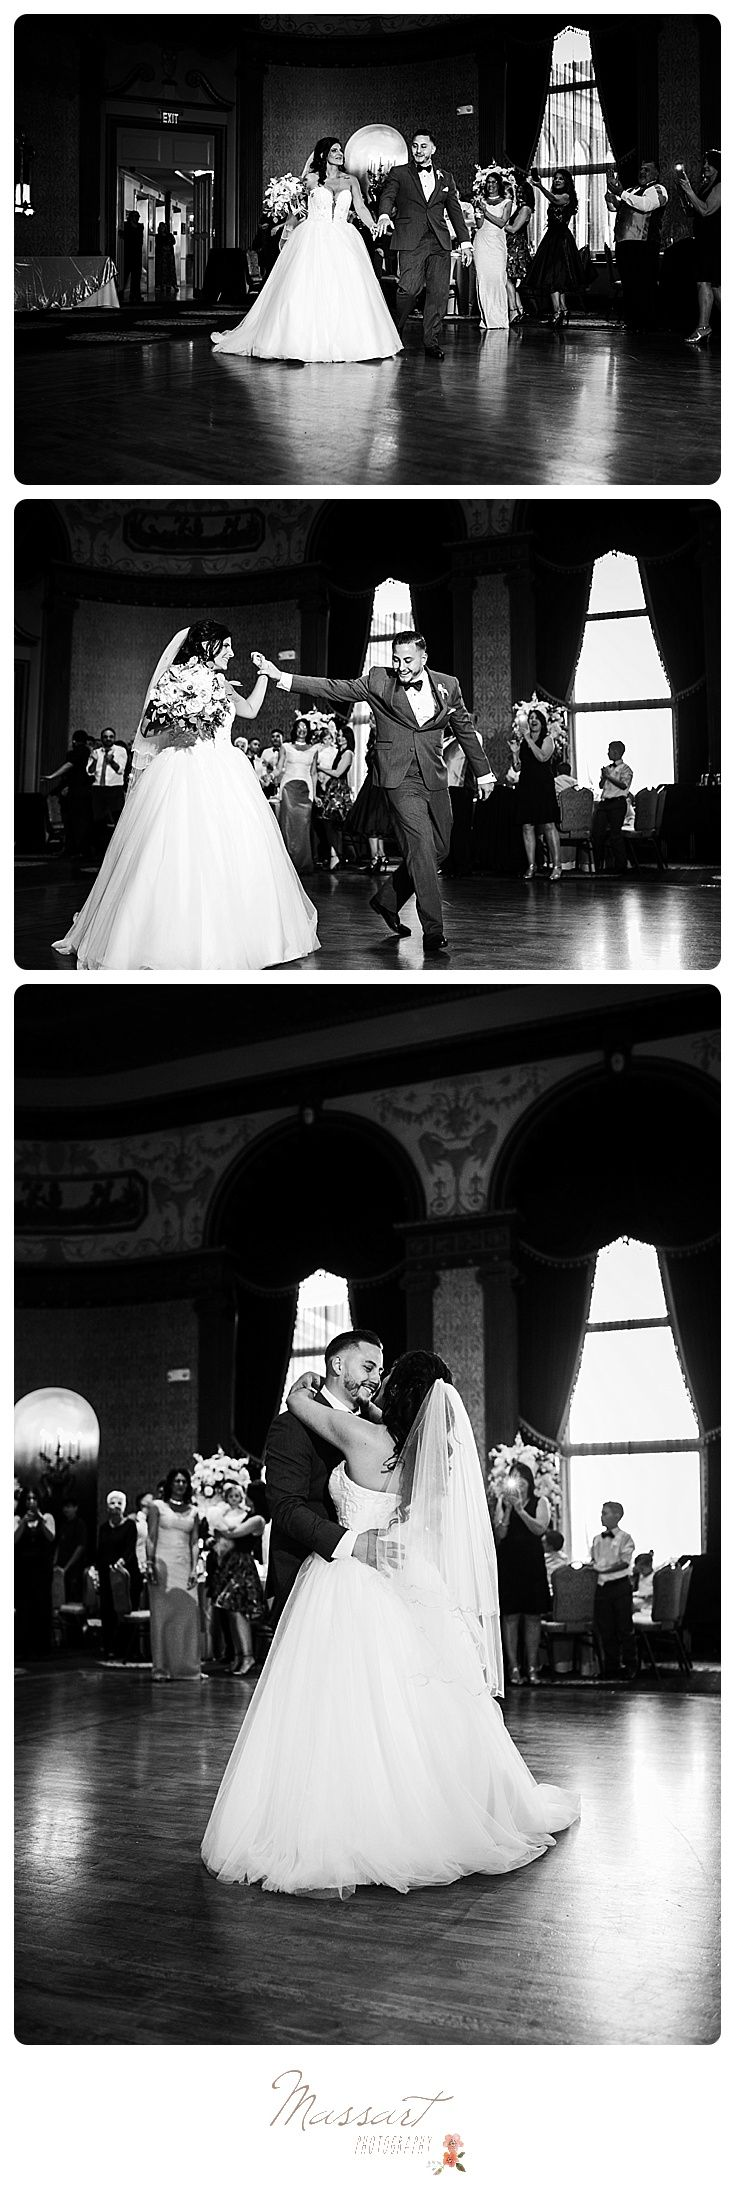 Glamorous black and white wedding portraits of the bride and groom walking in the ballroom at their reception photographed by Massart Photography of Rhode Island. | www.massartphotography.com; info@massartphotography.com